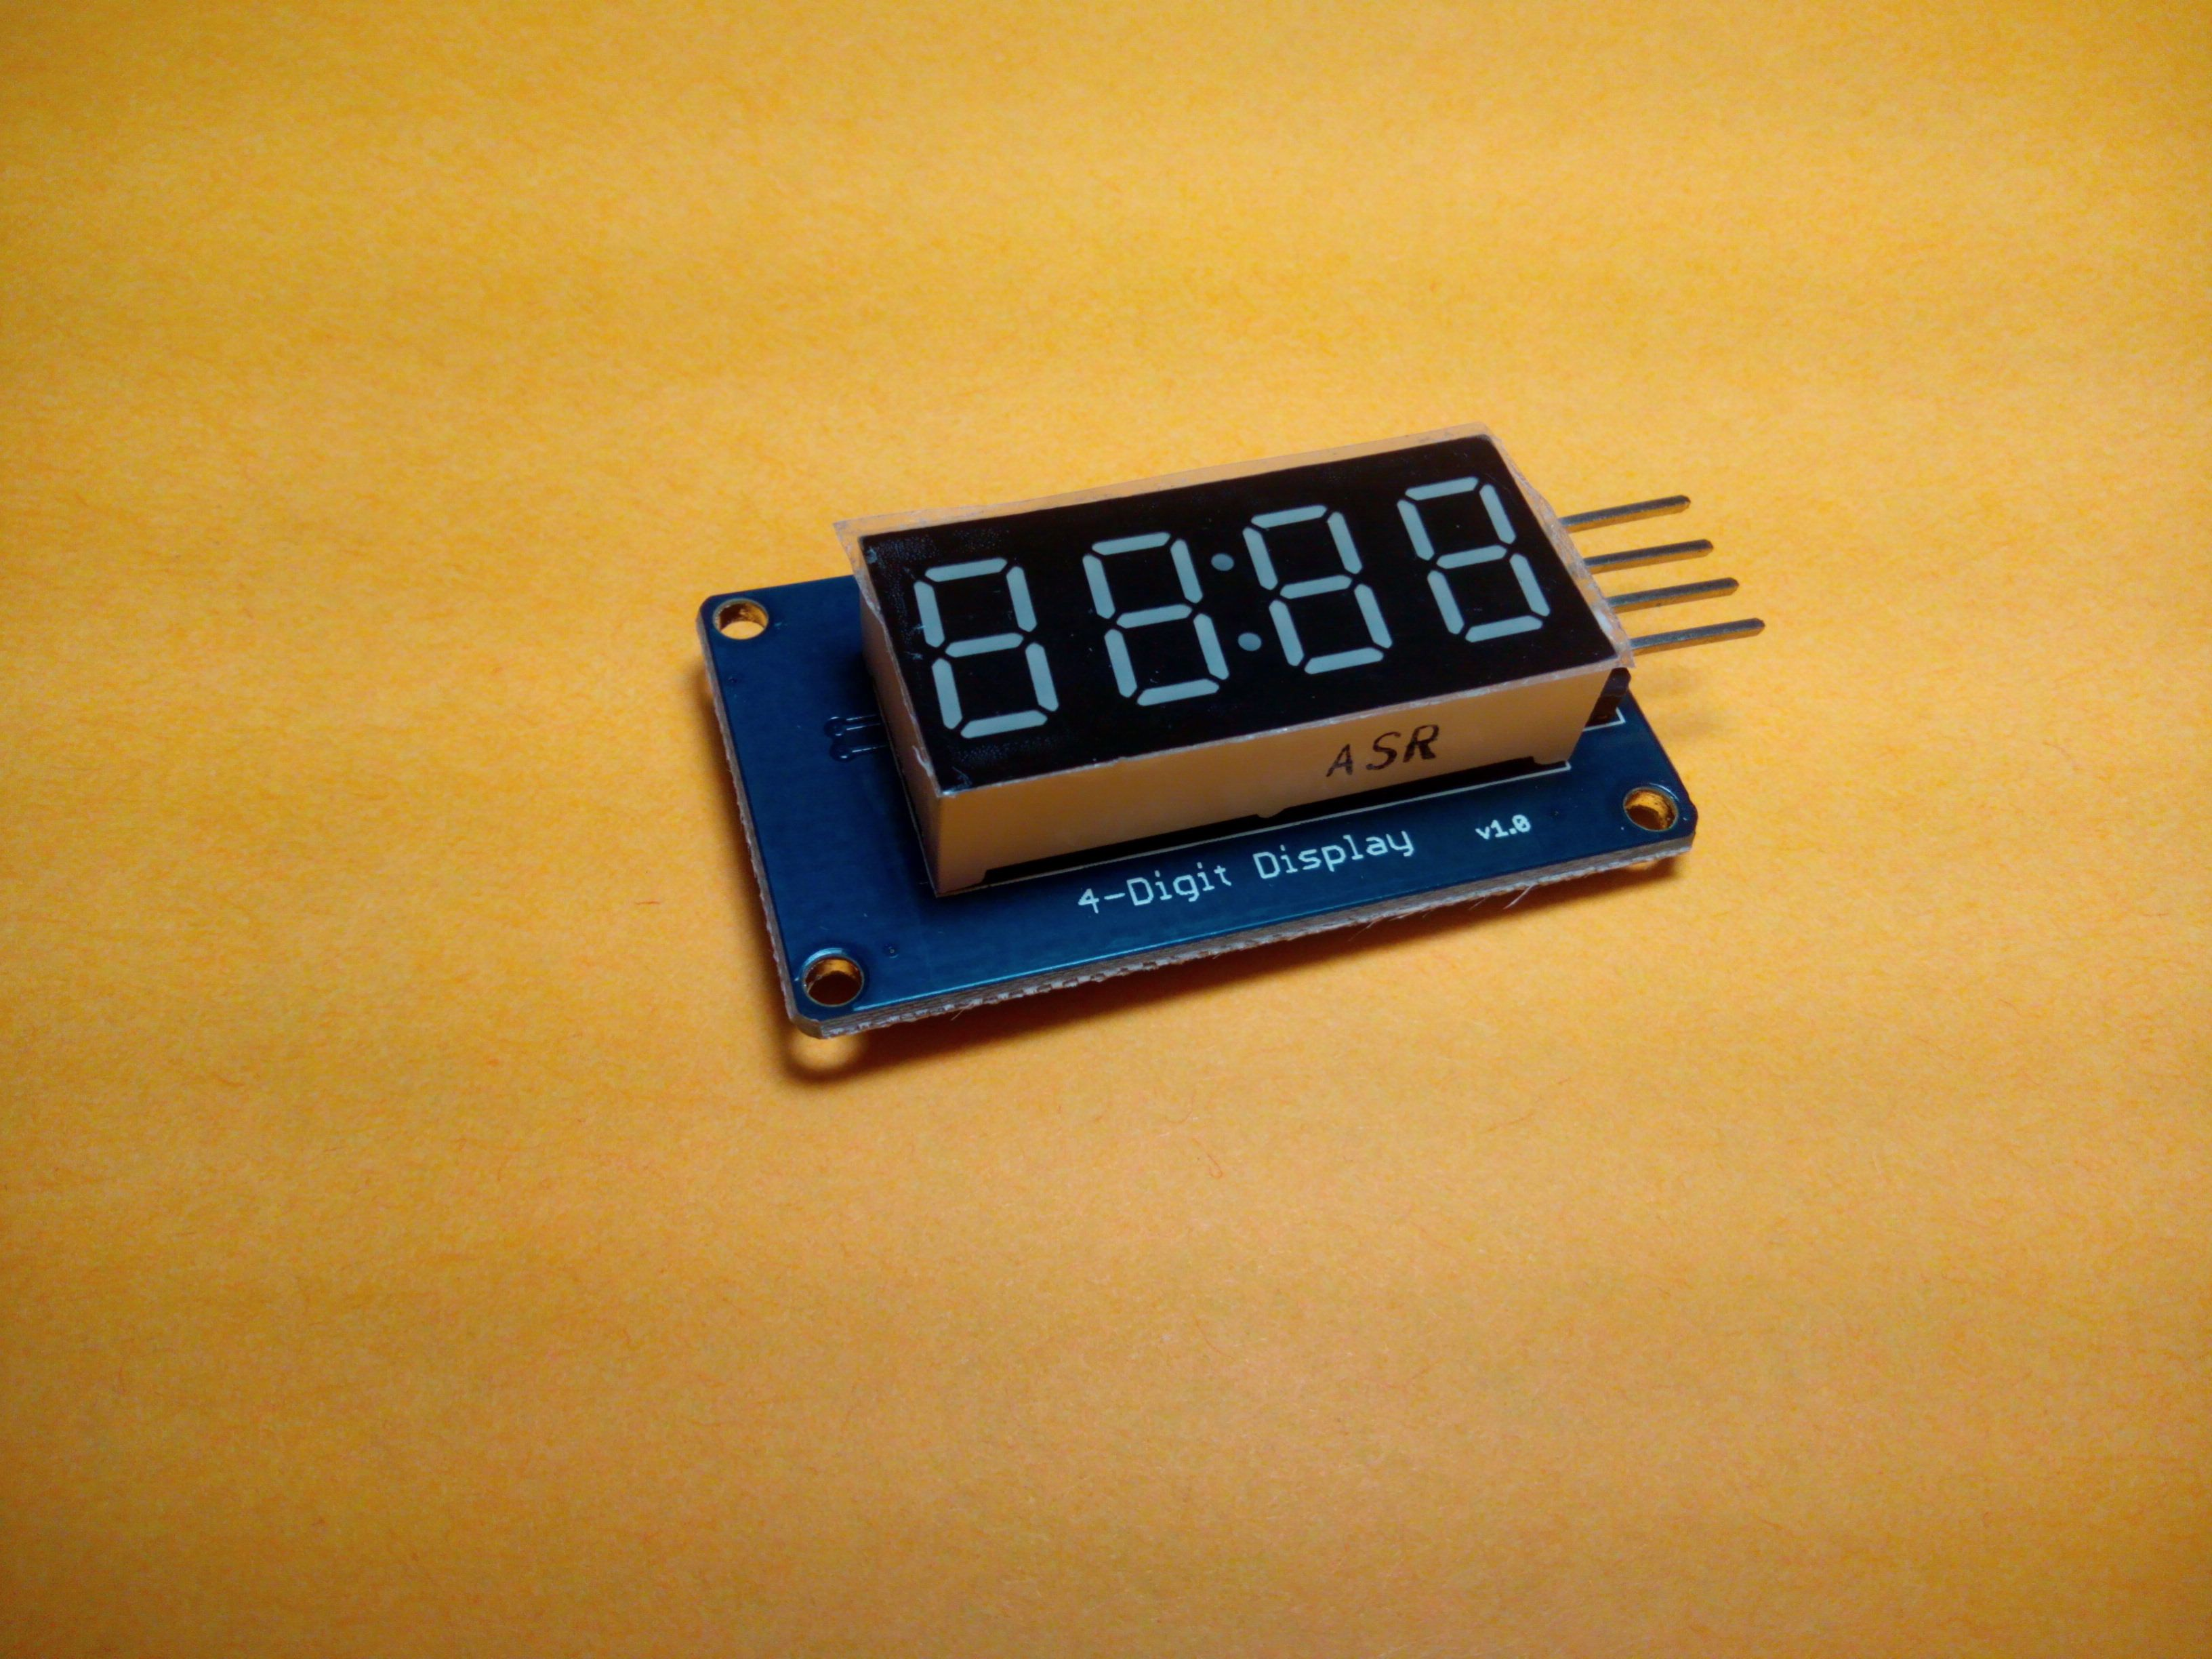 Arduino 7 Segment Led Display Tutorial Tm1637 4 Digit Technology Digital Clock Circuit Diagram In This Detailed With Example Codes We Will Exactly Program The Same Thing